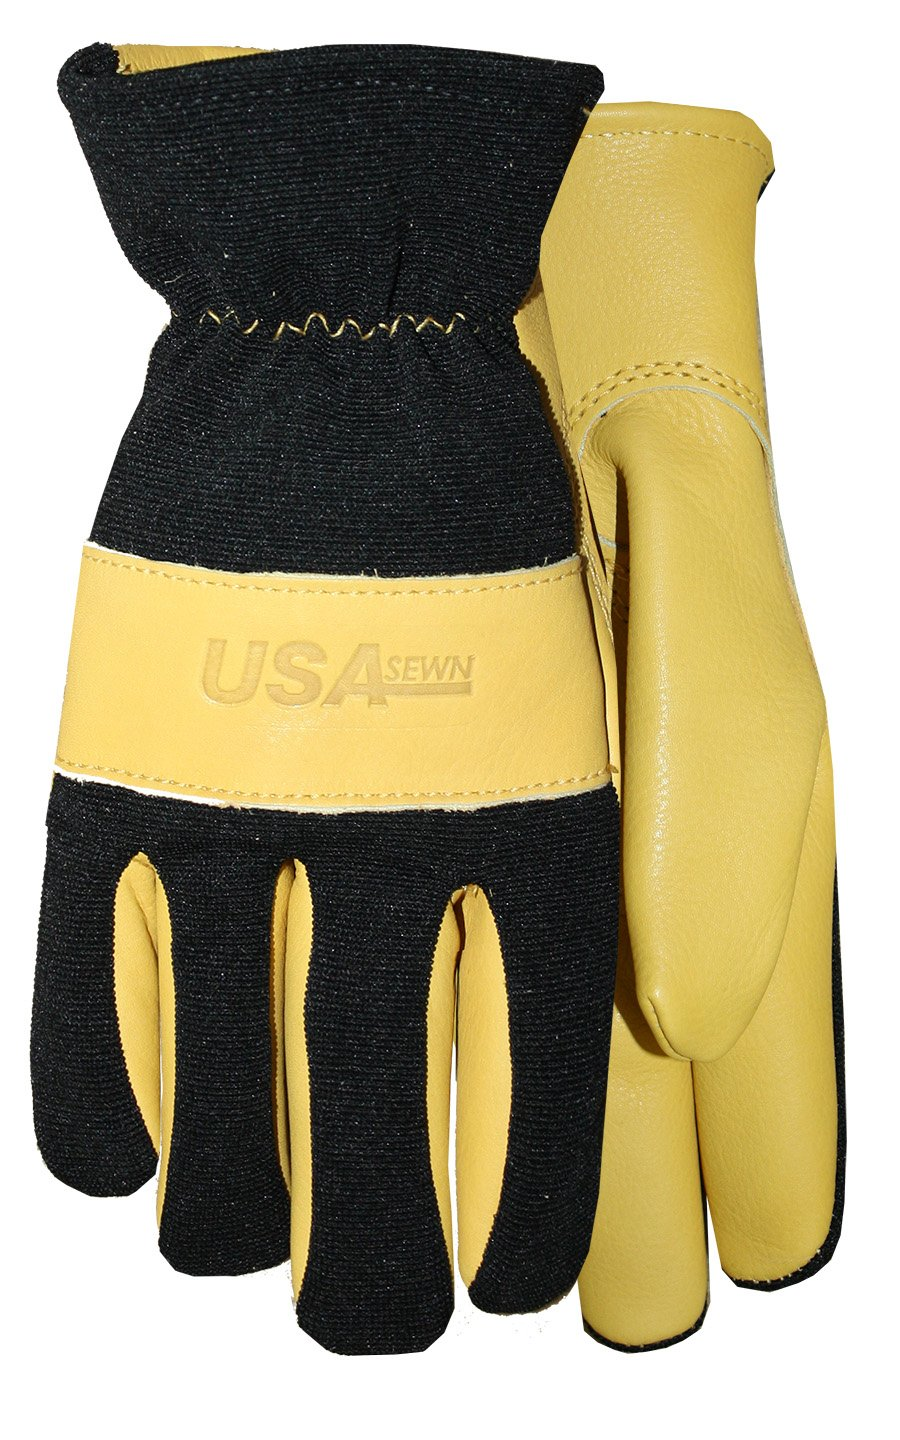 Midwest Gloves & Gear 177-XL-AZ-6 USA Leather Glove, Extra Large, Black Spandex with Gold Leather